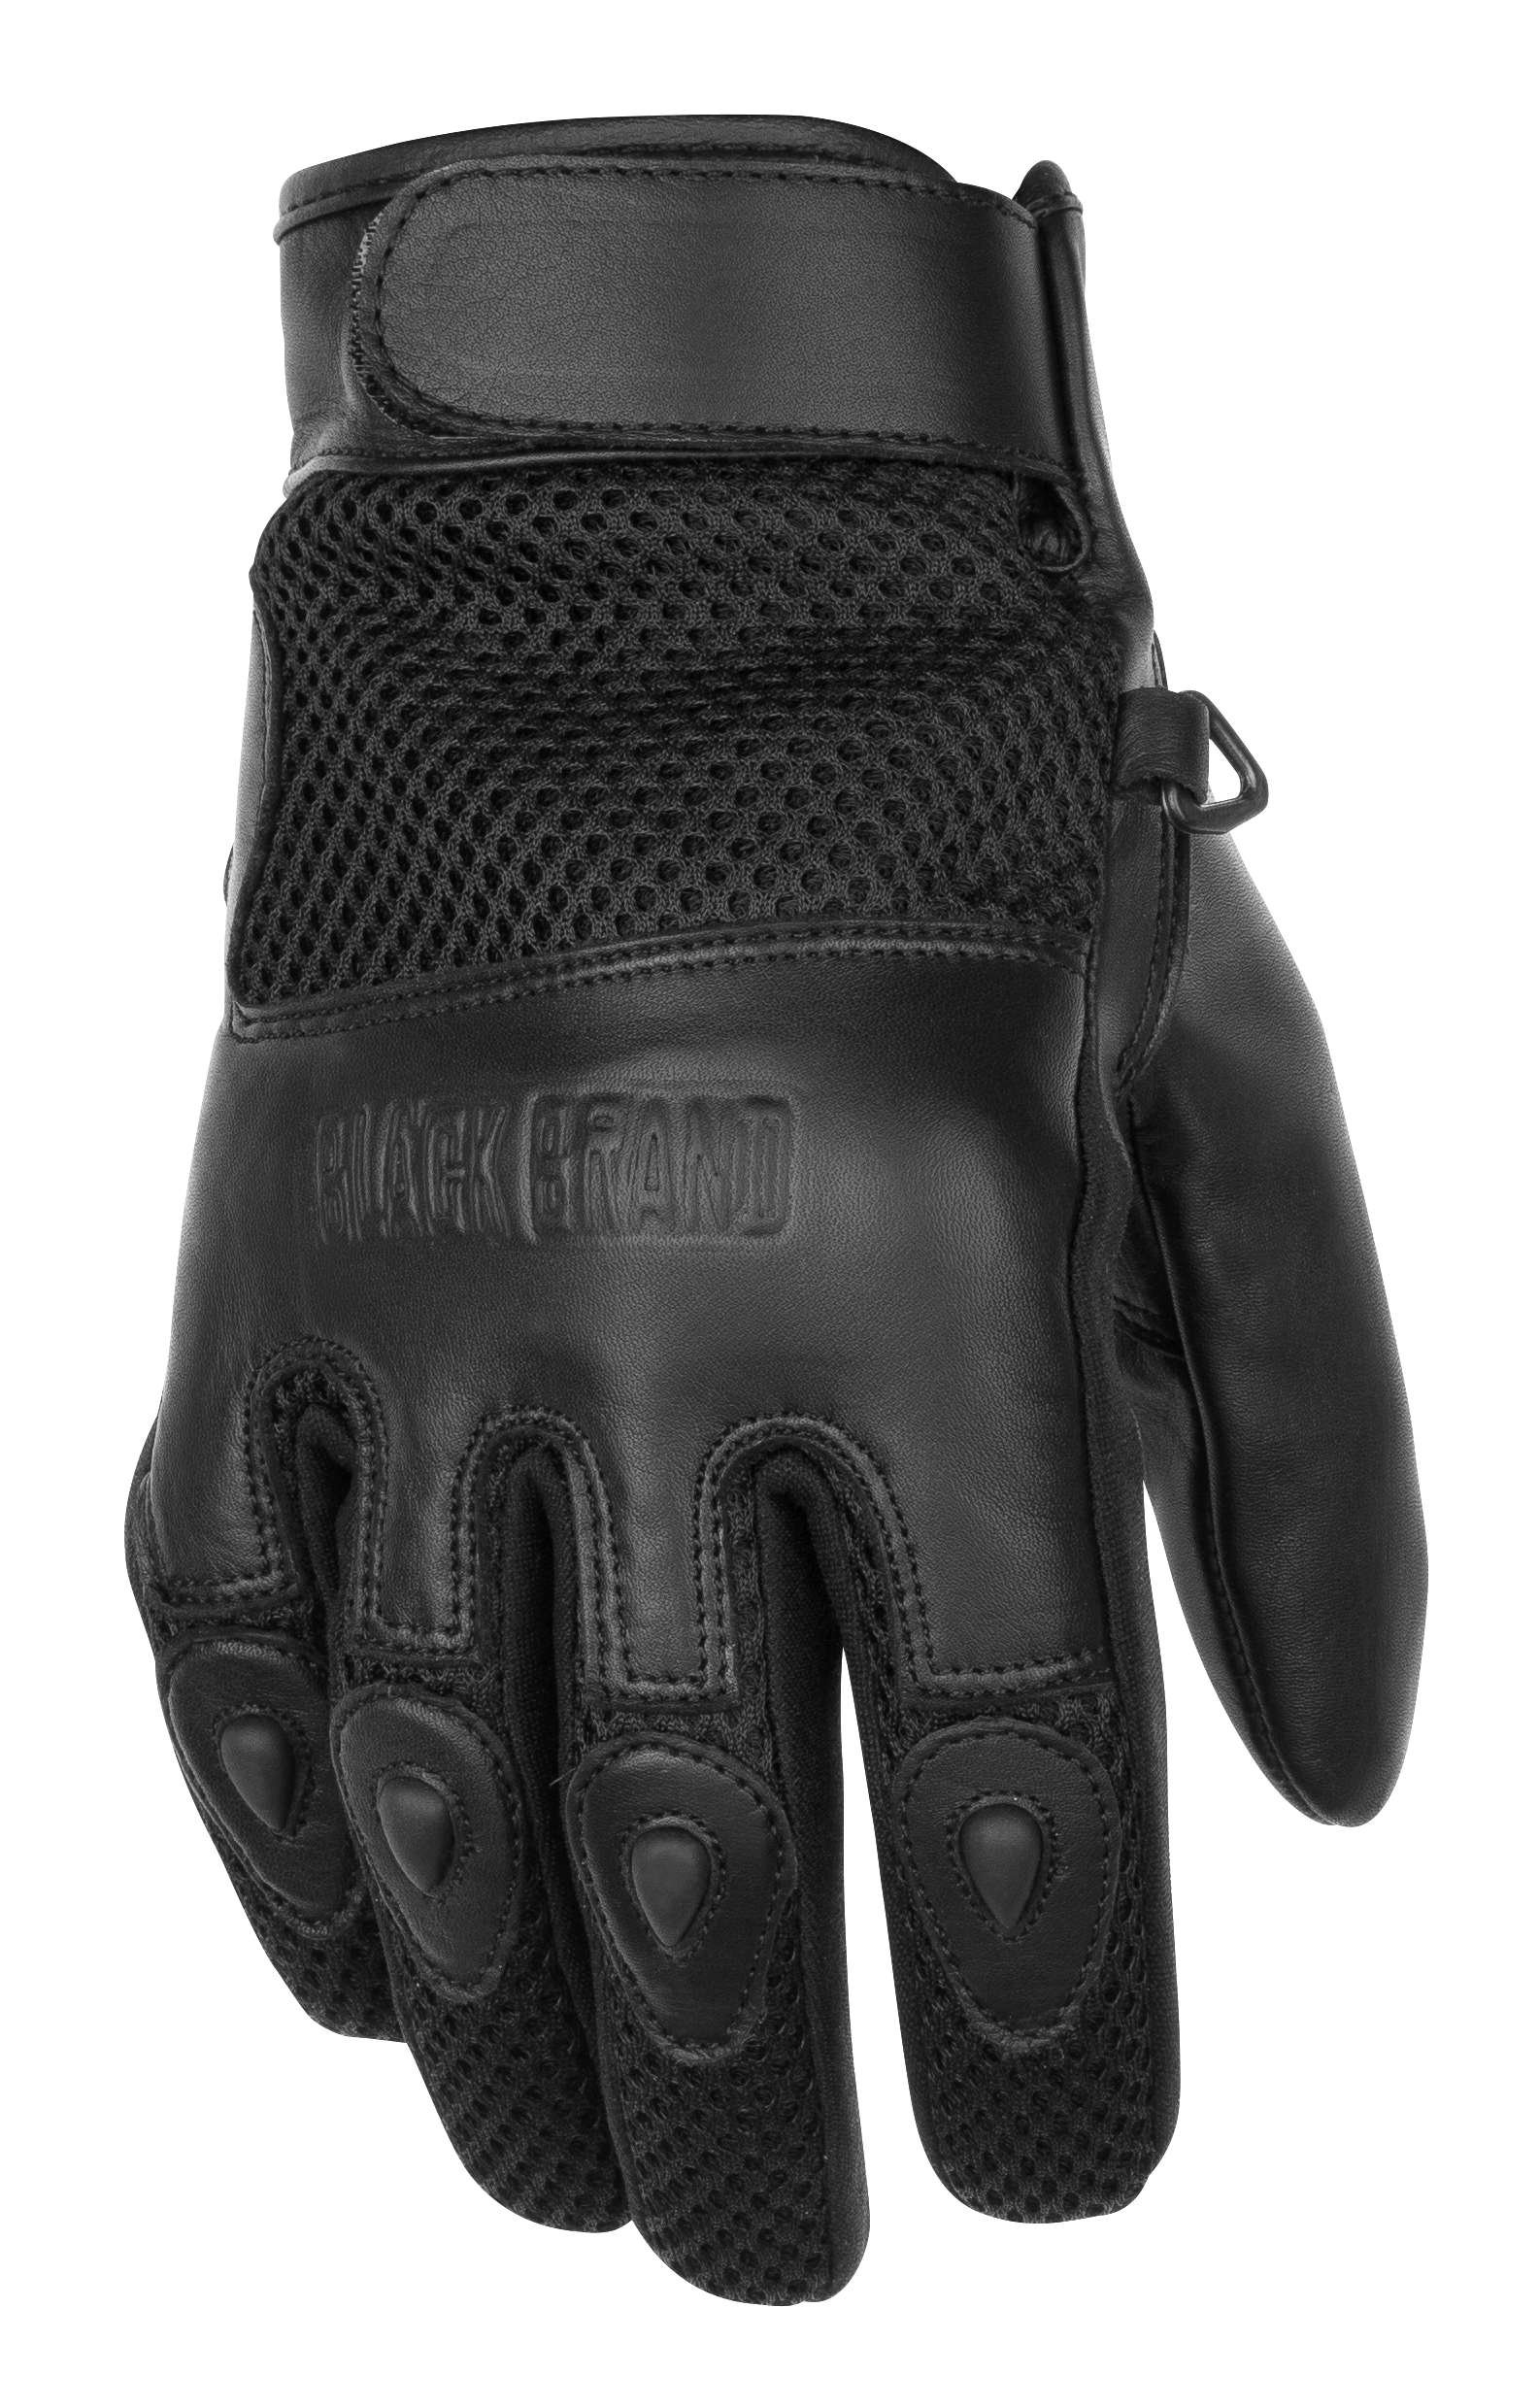 Black Brand Men's Leather/Mesh Challenge Motorcycle Gloves (Black, X-Large)